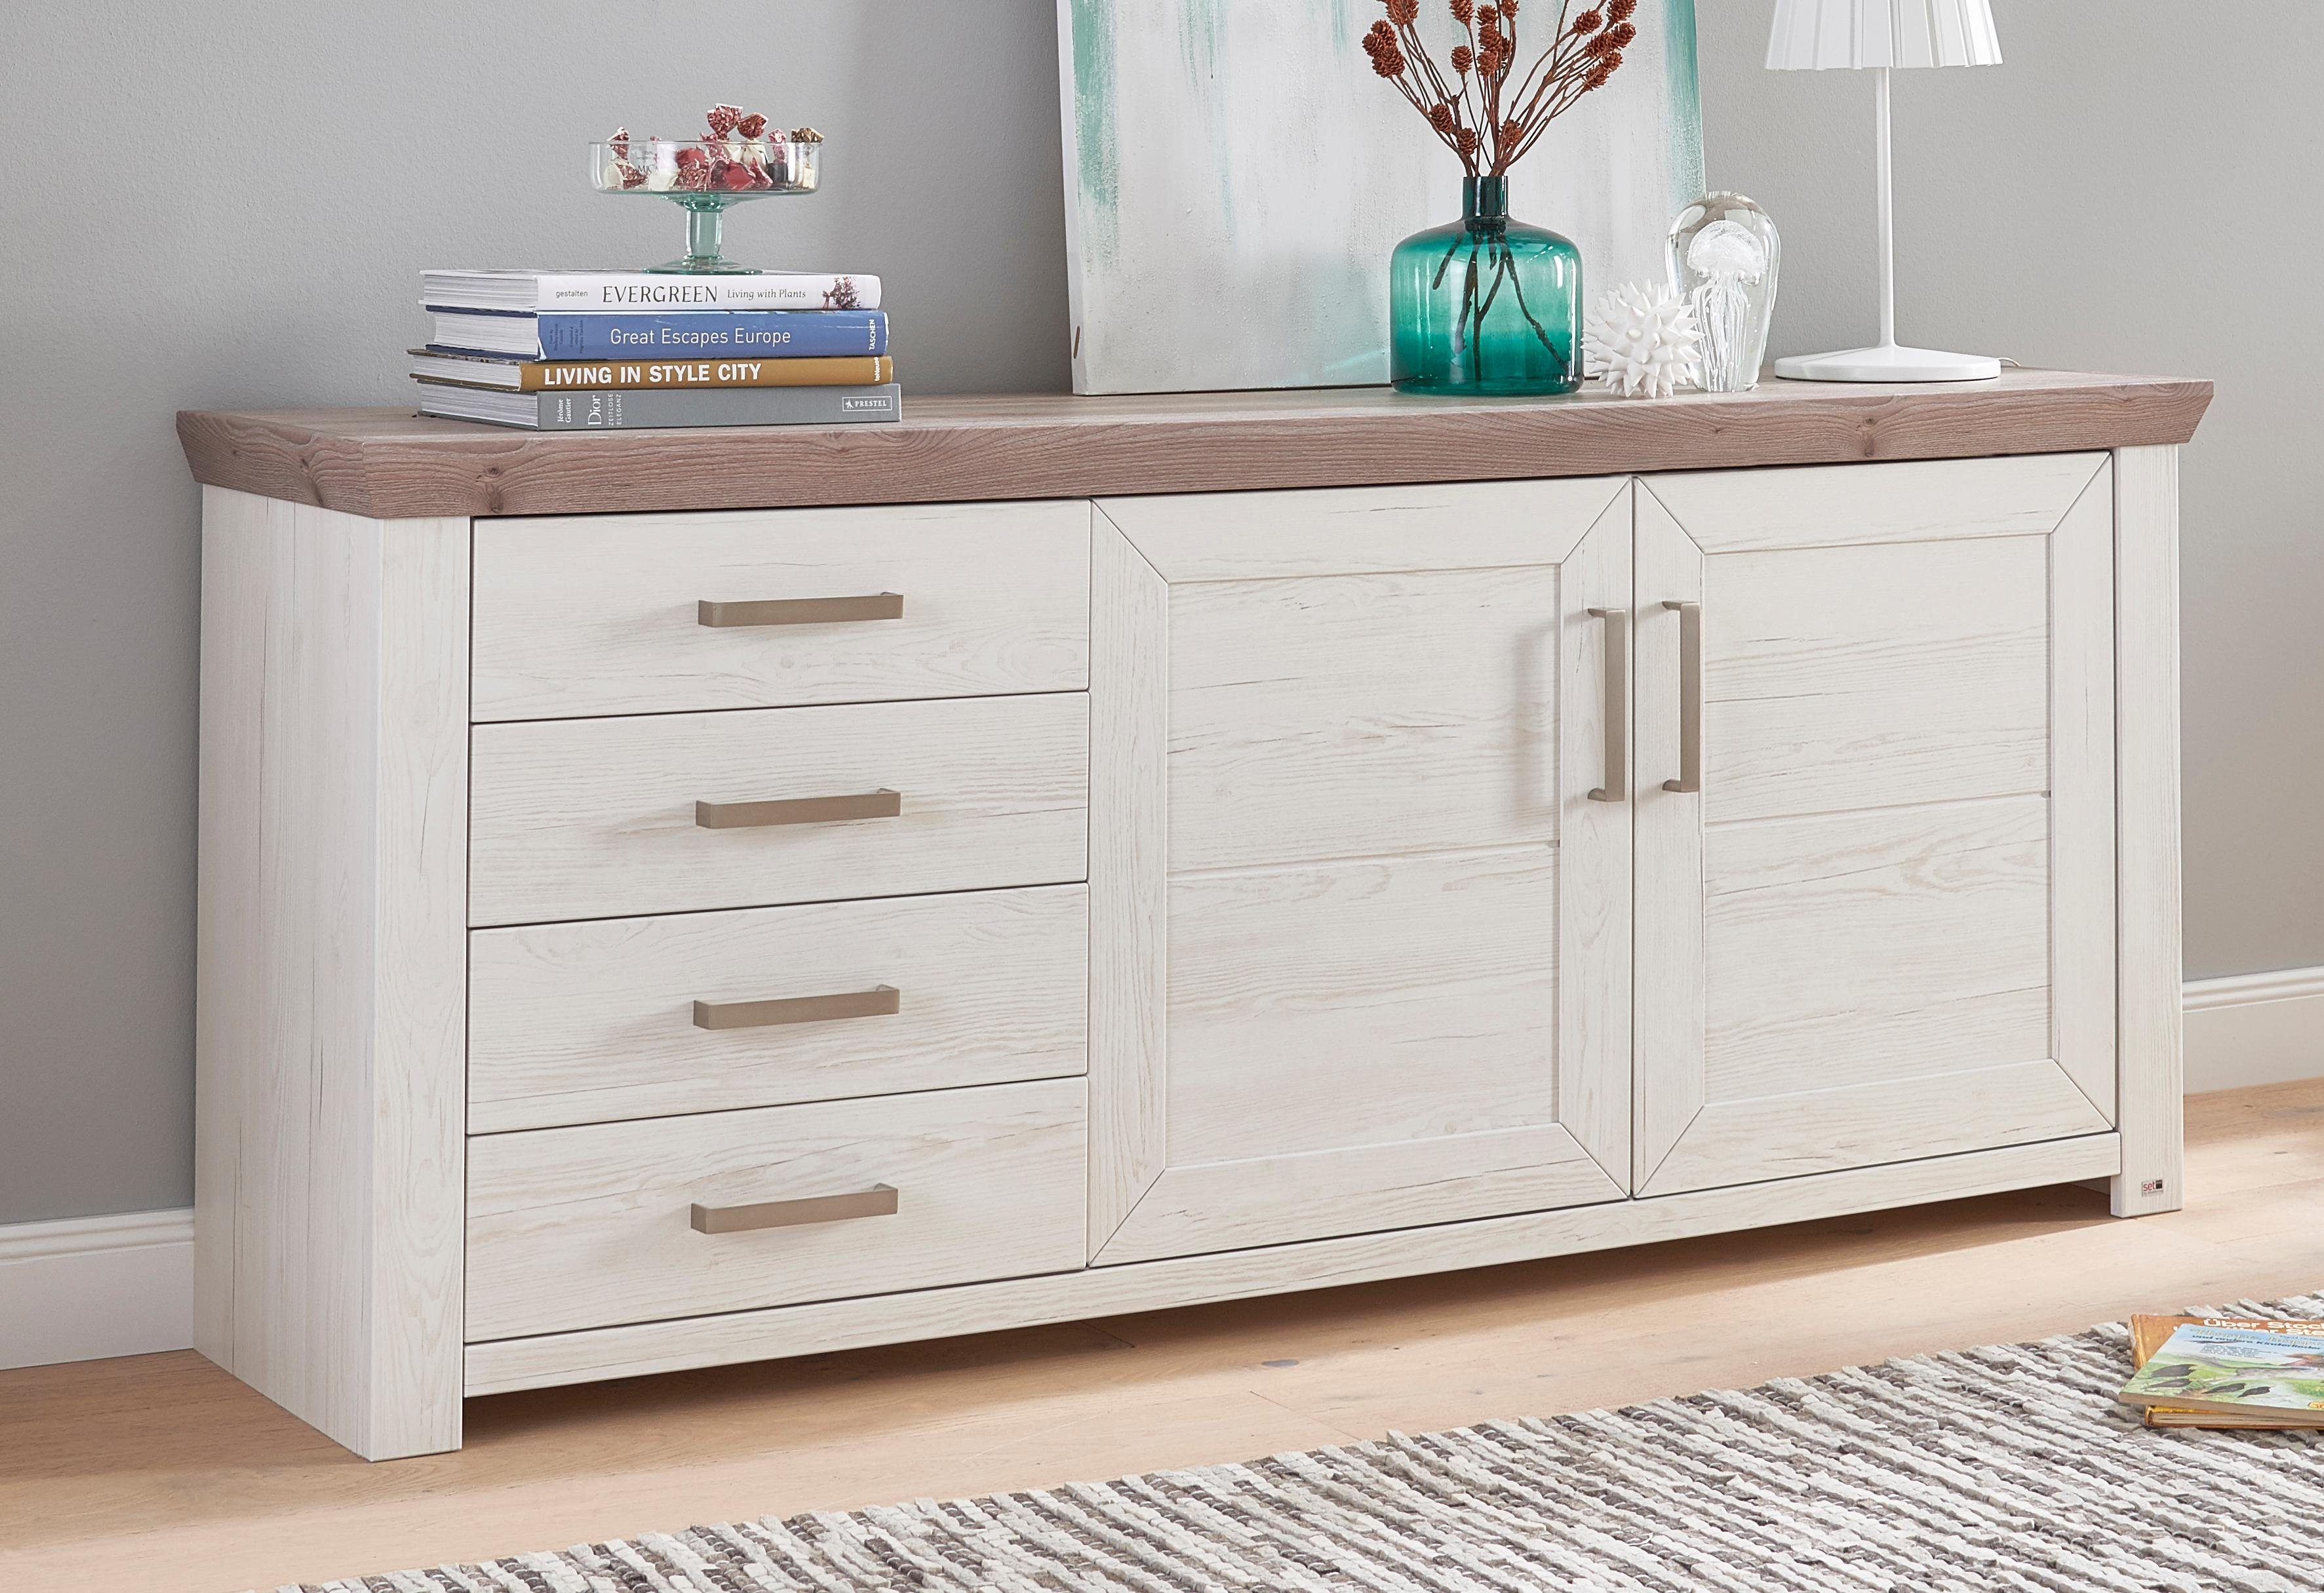 Set One By Musterring Sideboard  York Typ 51 Breite 184 Cm Online Kaufen Set One By Musterring Tv Boards Komnit Store